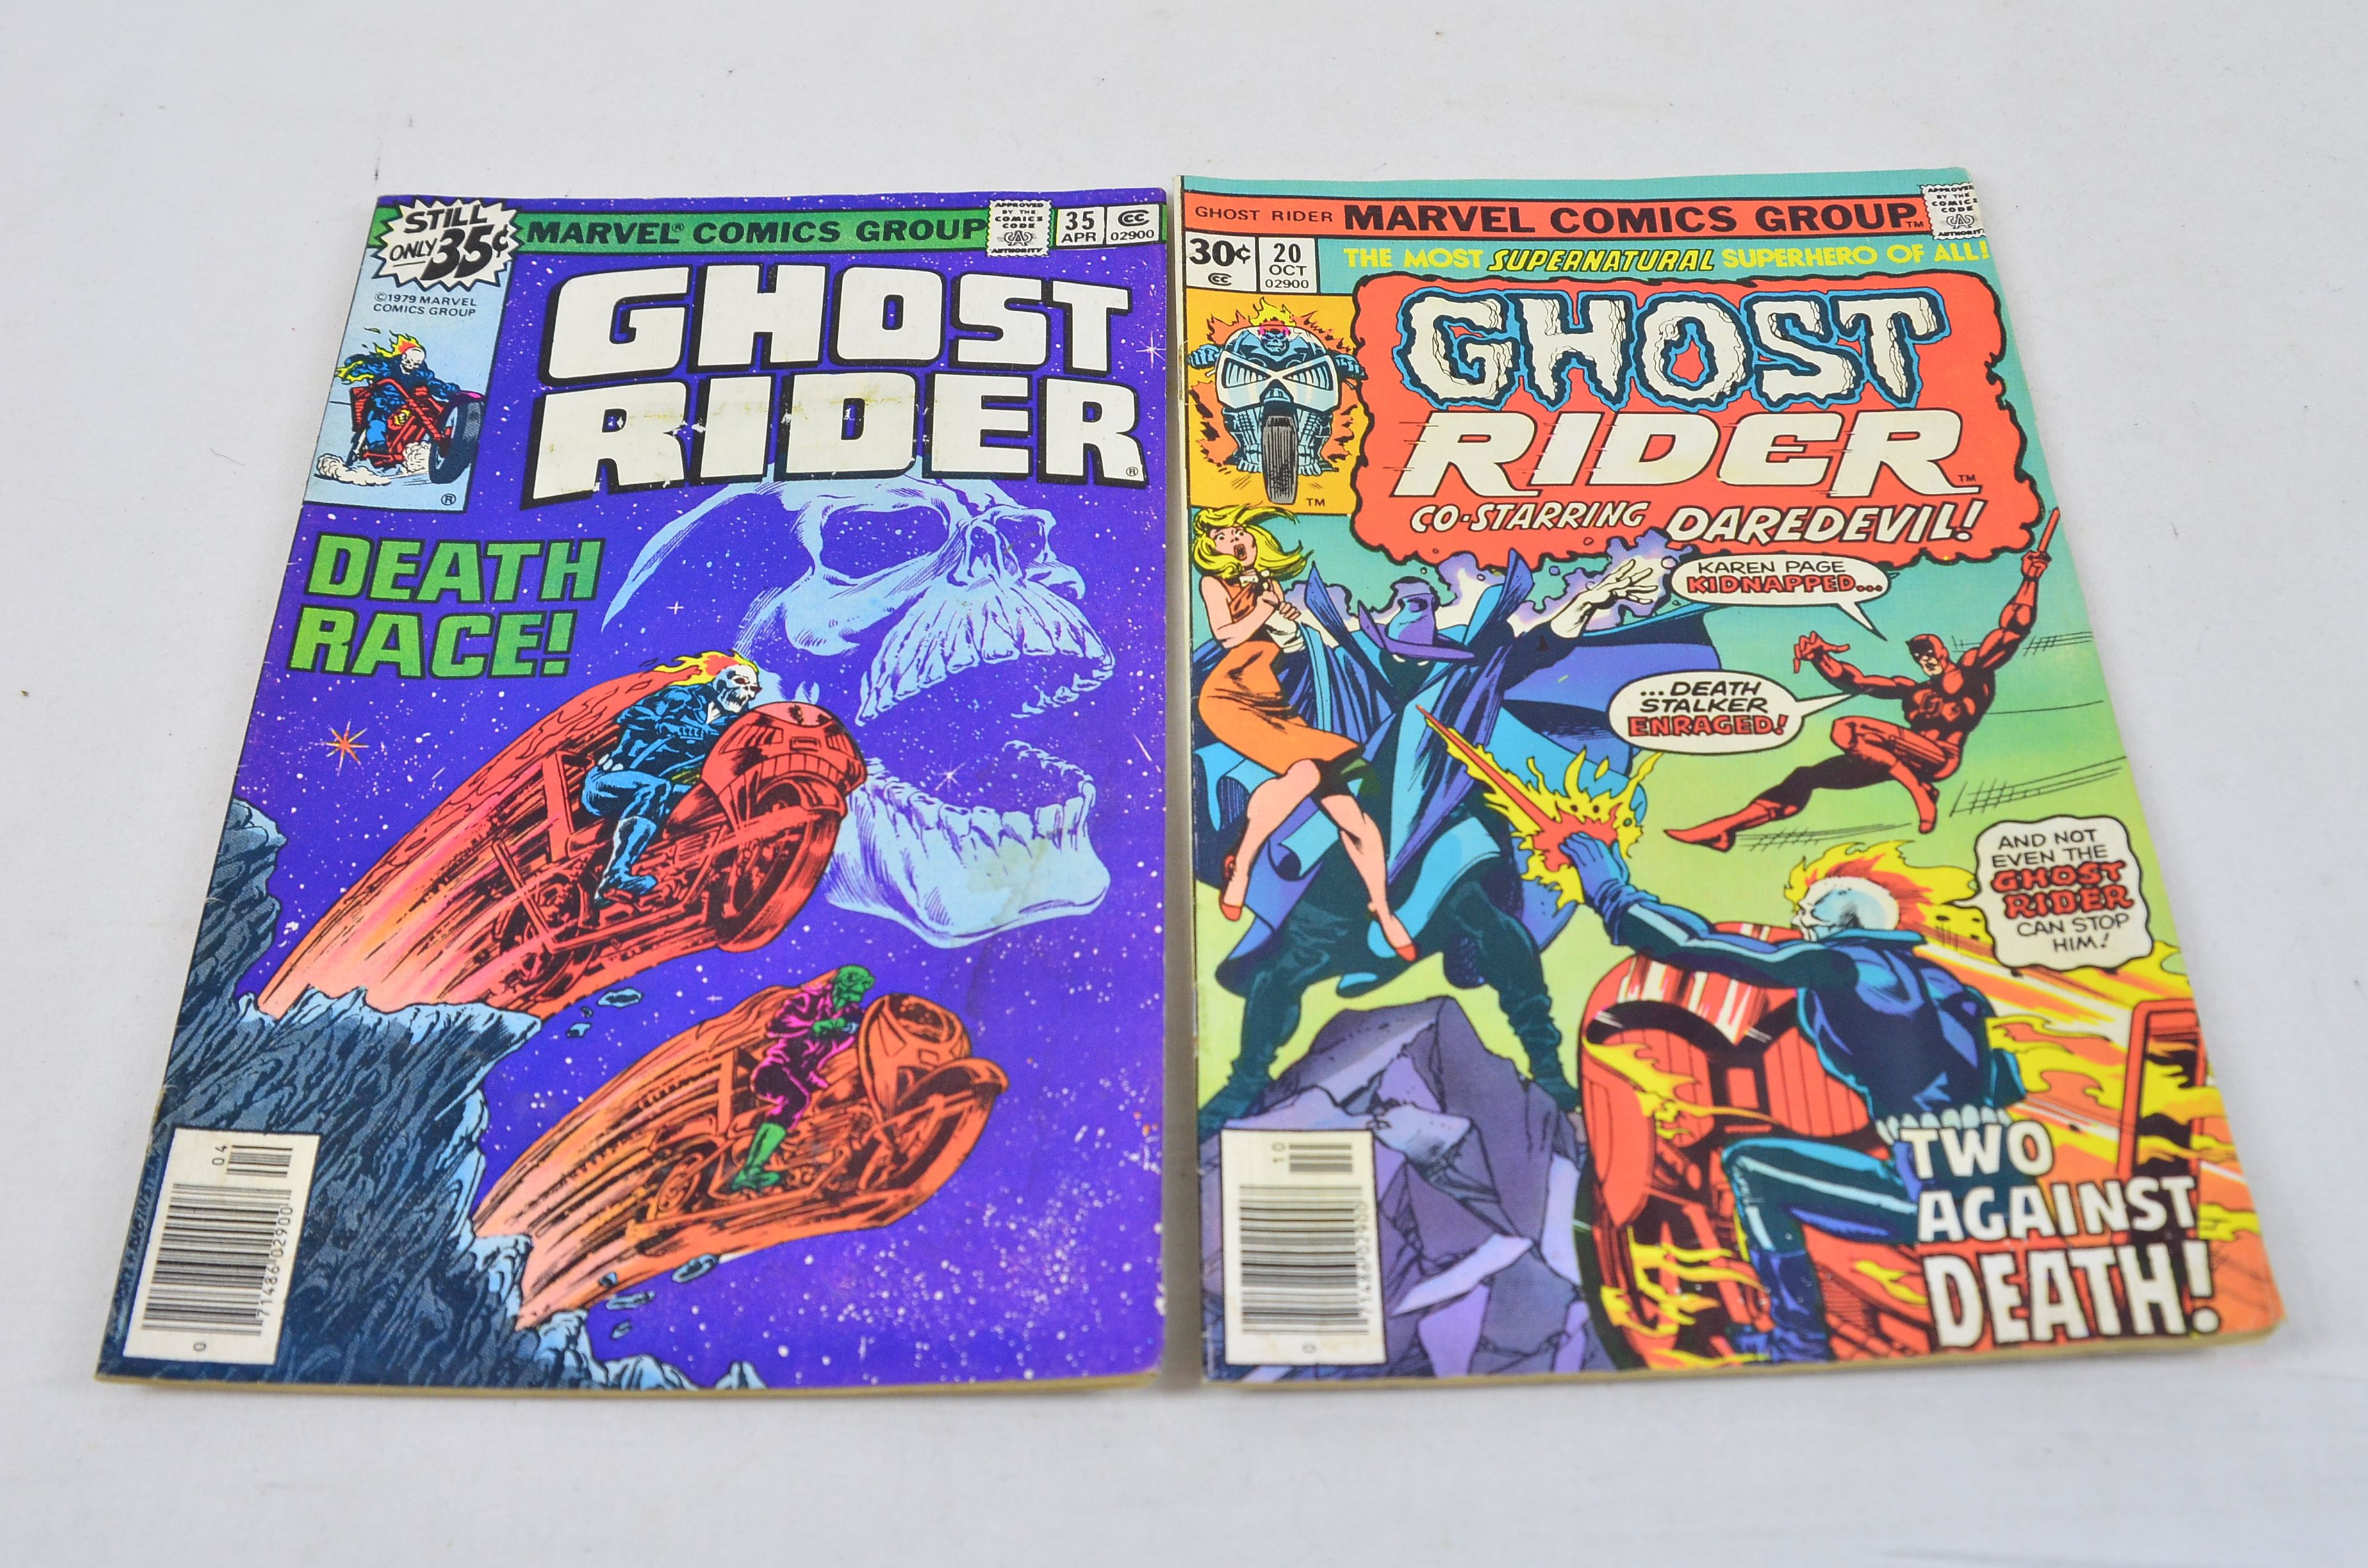 Vintage Marvel Comics Group Ghost Rider Co-Starring Daredevil Collectable Comic Thumbnail 1